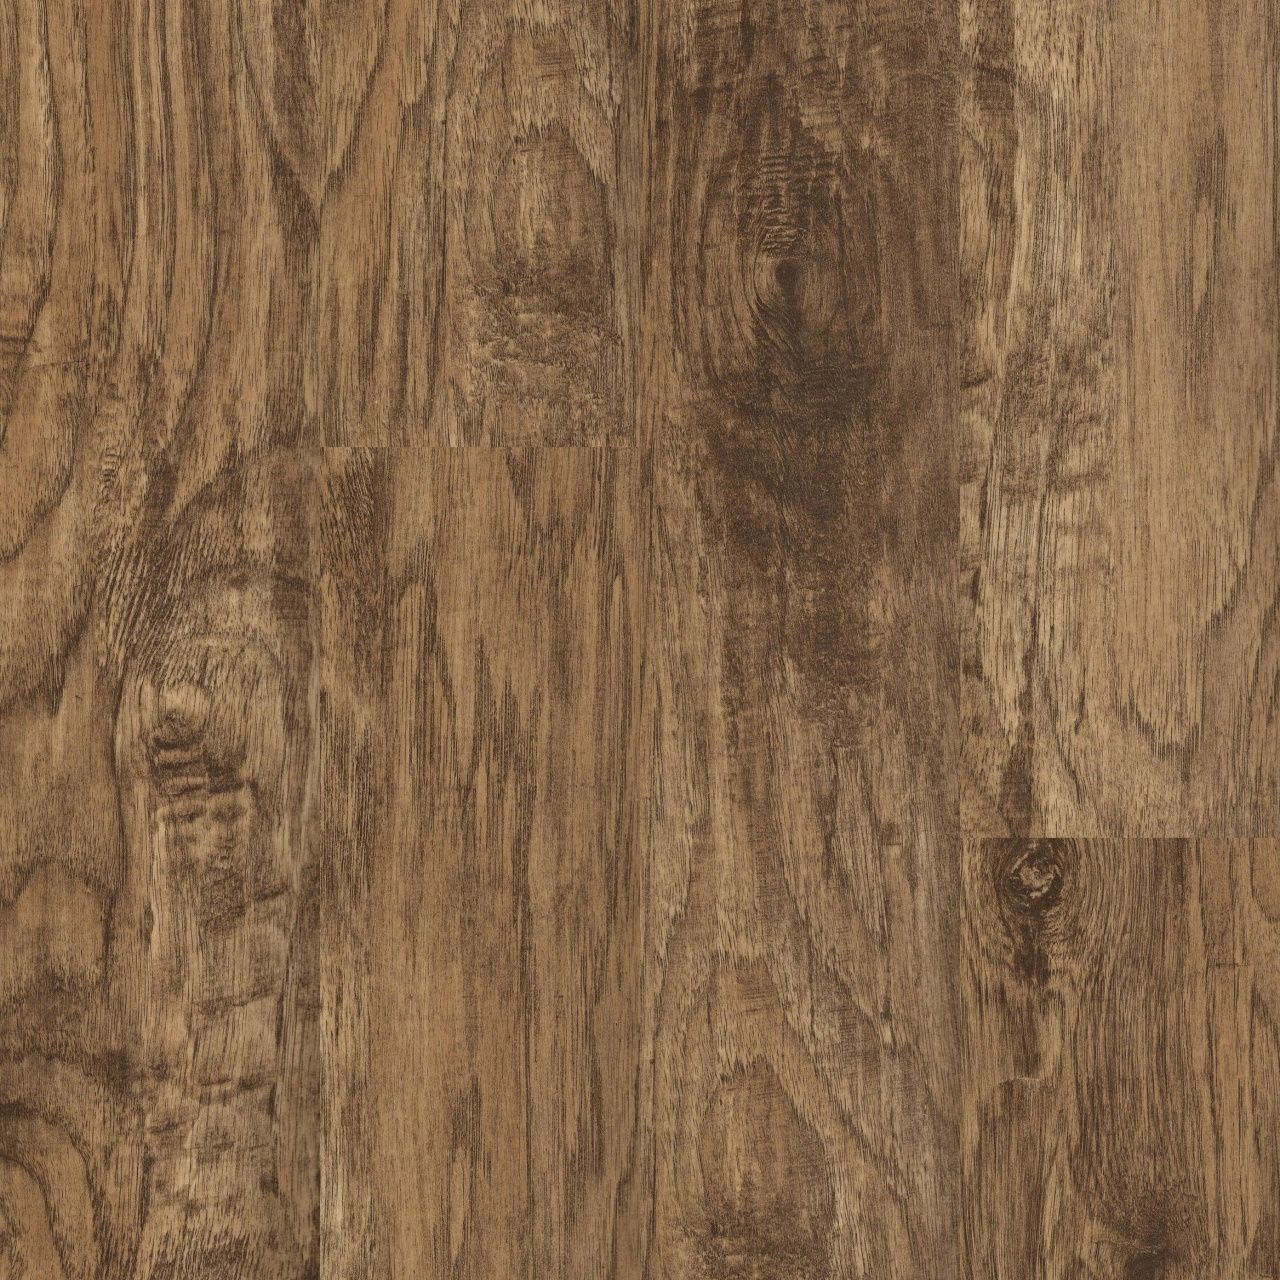 Vinyl Wood Plank Flooring Reviews in 2020 Vinyl plank